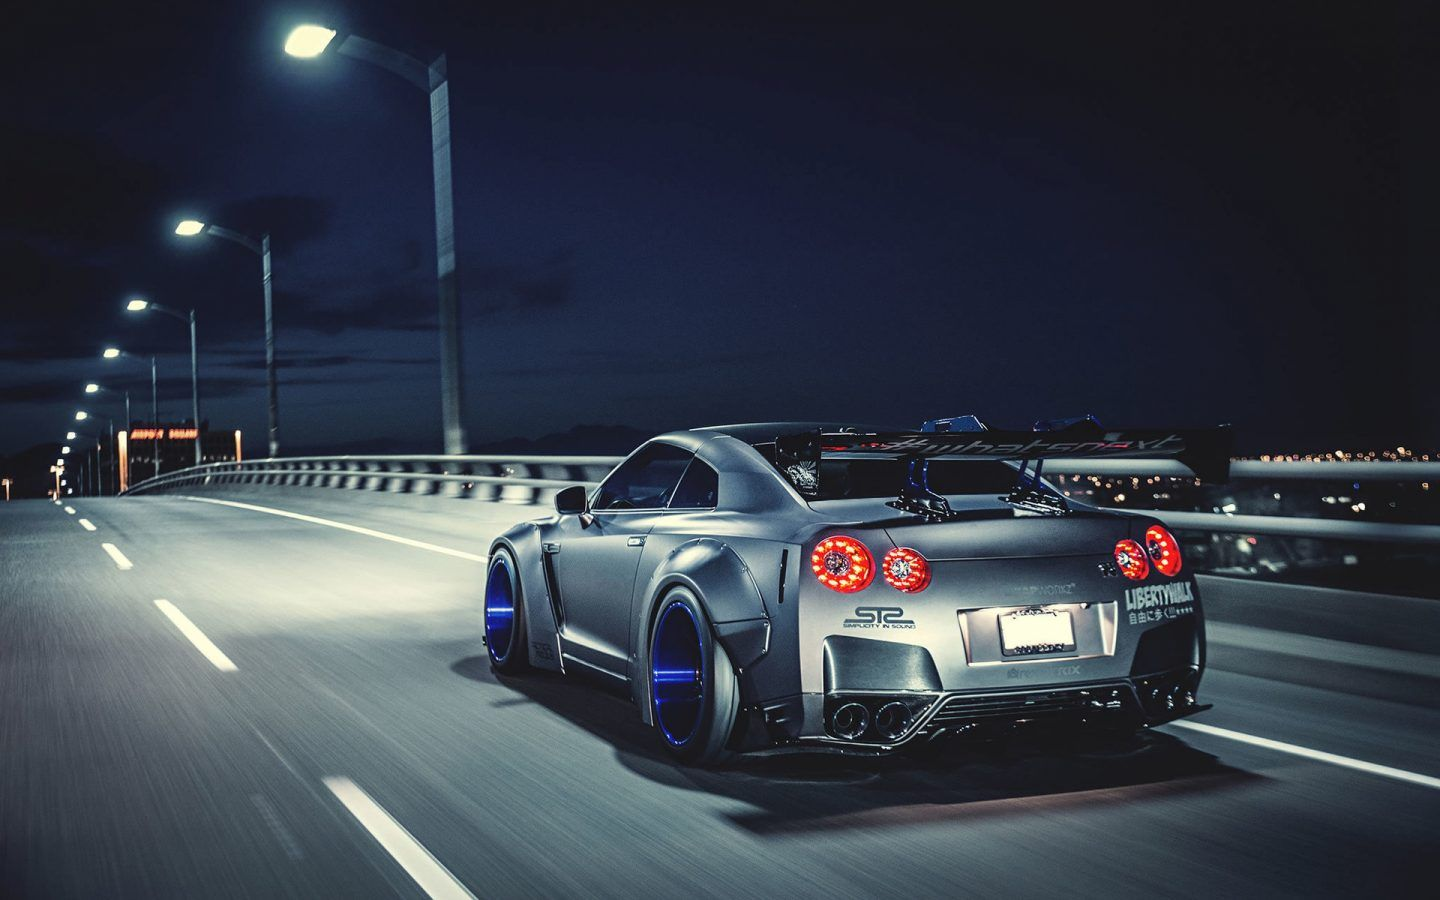 Nissan Gtr Liberty Walk 4k Hd Wallpaper Coches Pinterest